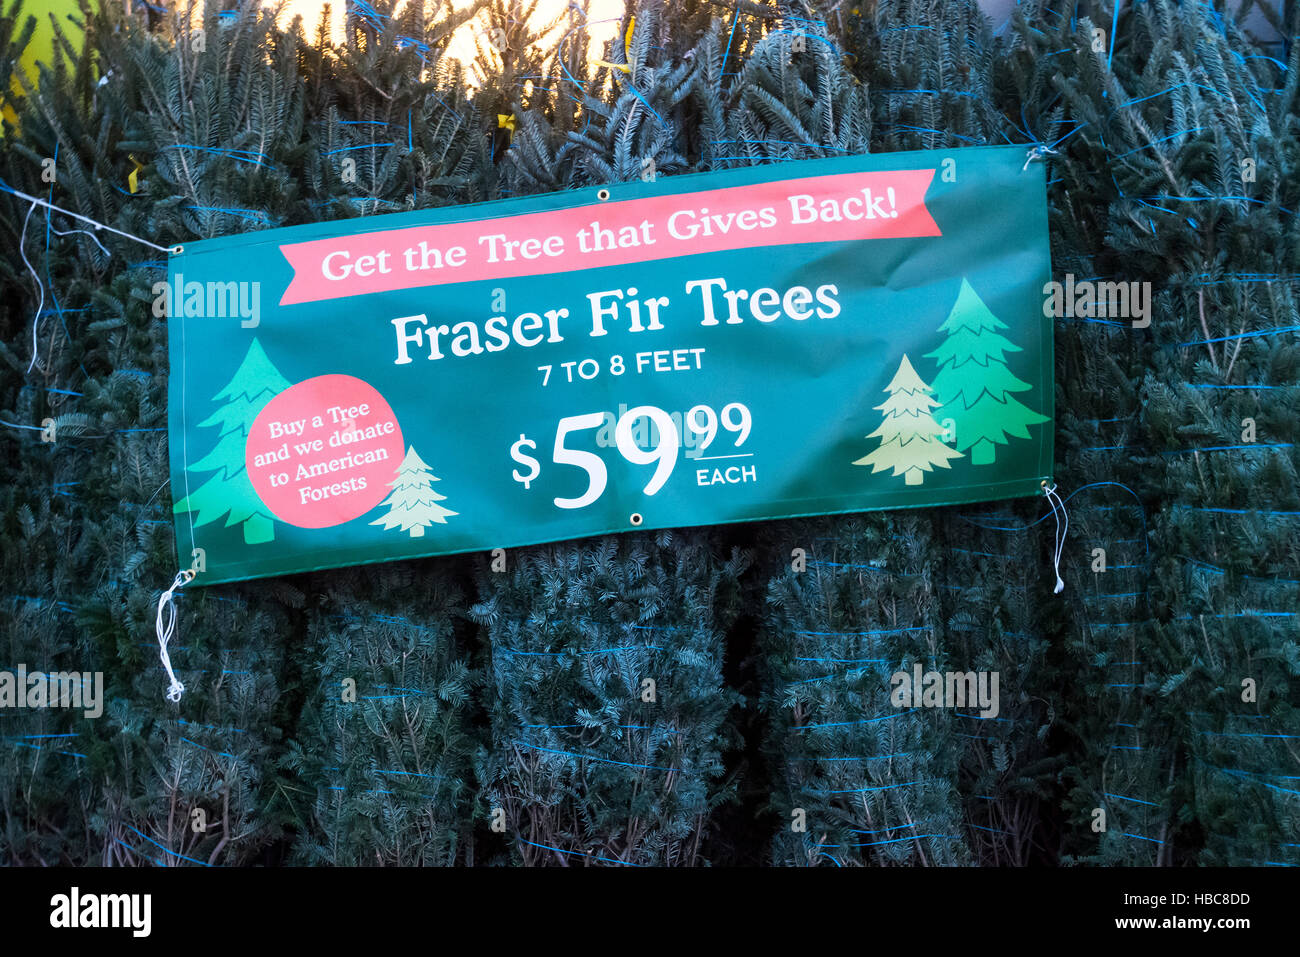 Fraser Fir trees on sale for Christmas holidays in New York City - Stock Image